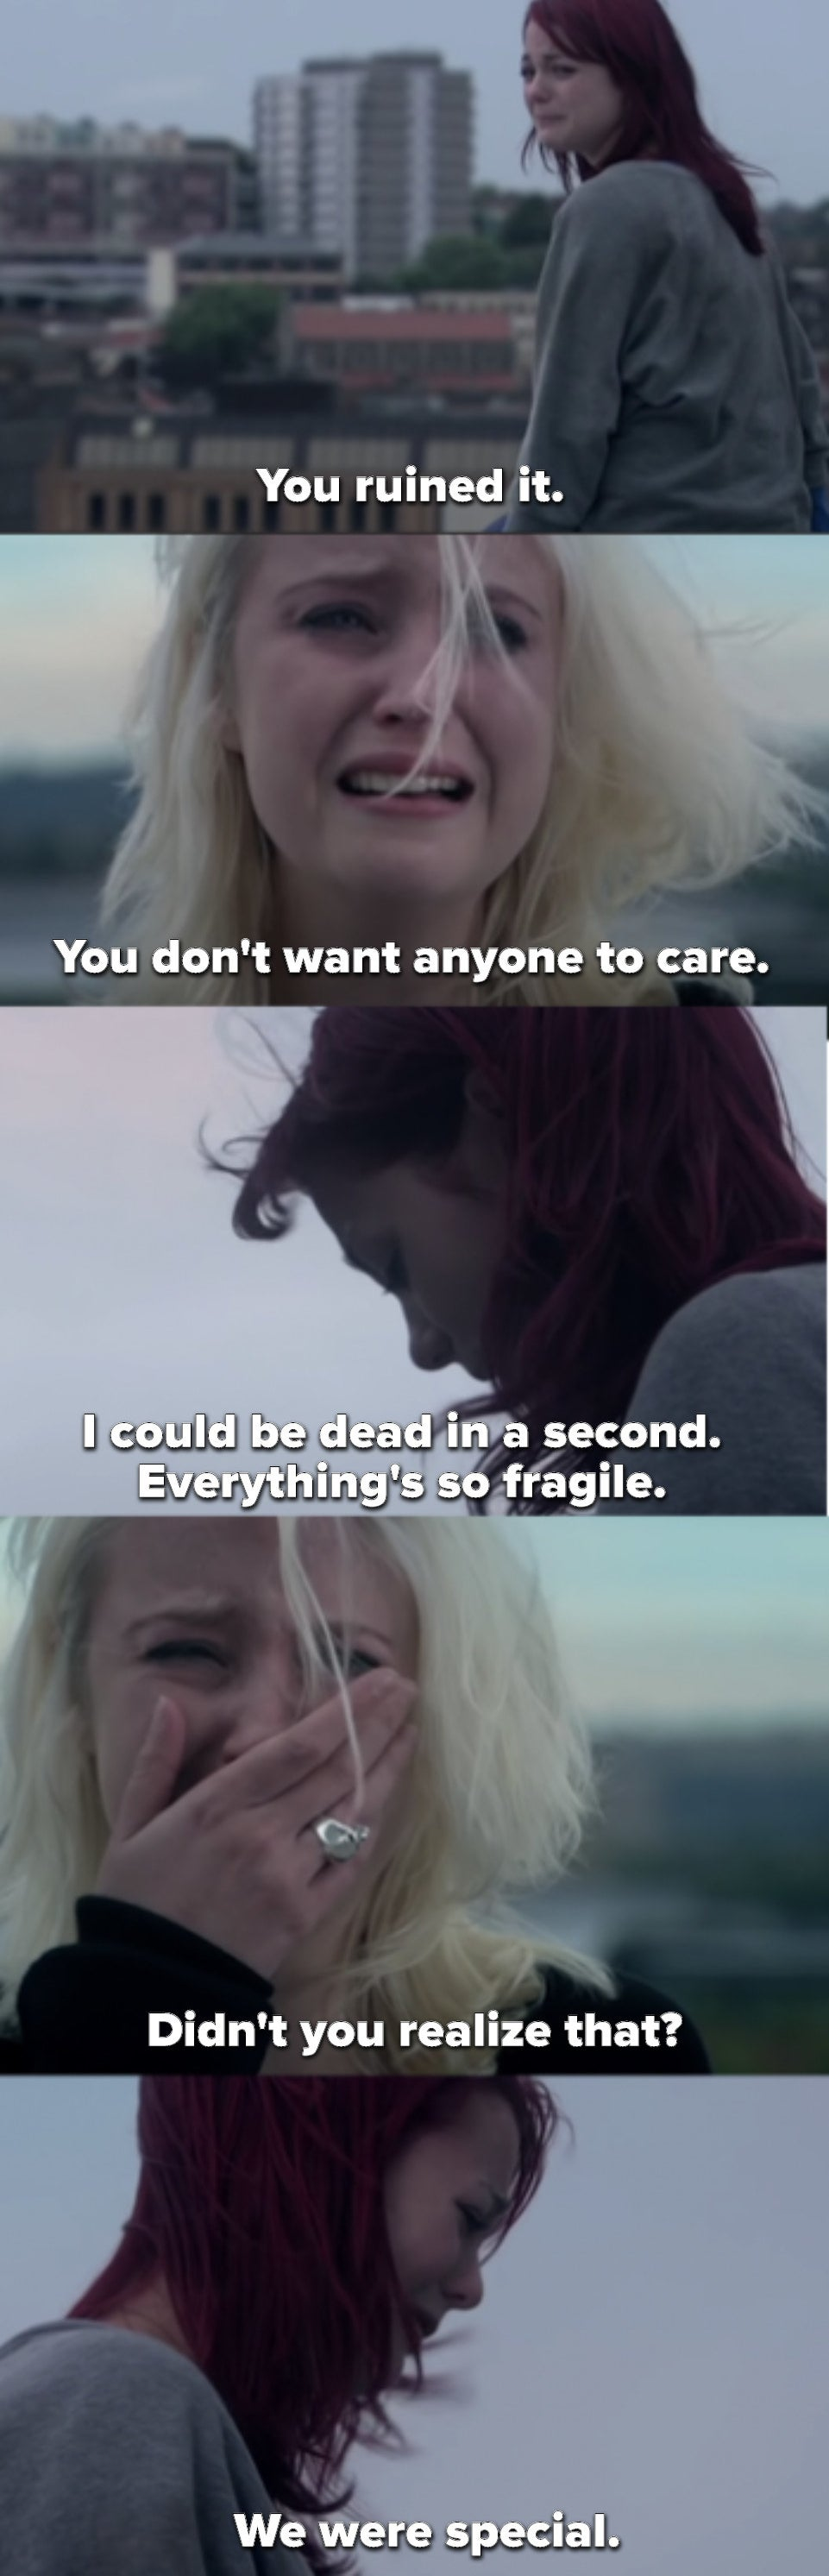 """Emily says """"You ruined it. You don't want anyone to care. I could be dead in a second. Everything is so fragile. Didn't you realize that? We were special"""""""